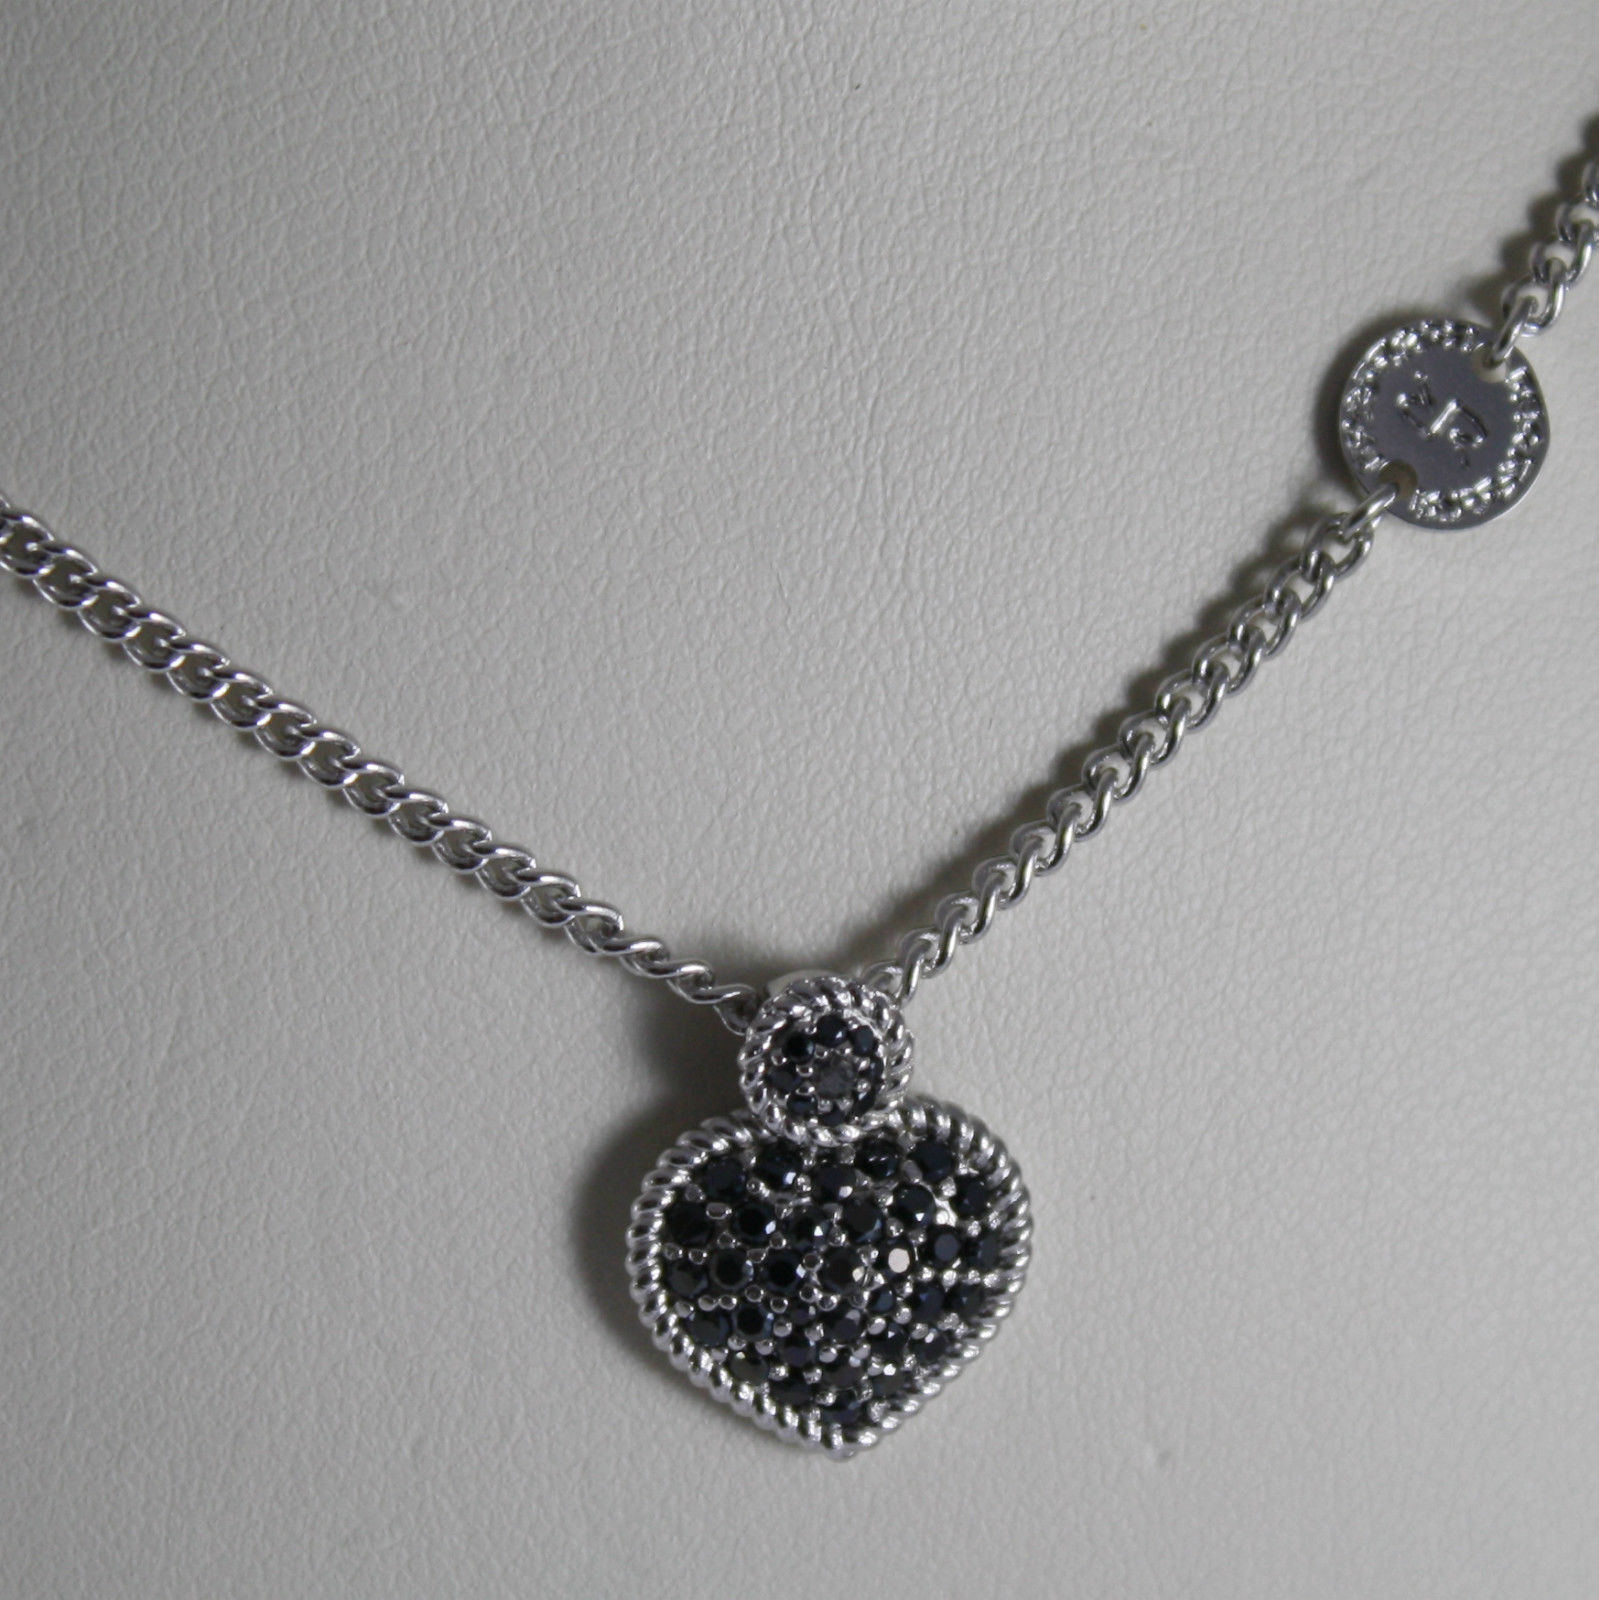 RHODIUM BRONZE NECKLACE WITH HEART B14KBN04 BLACK ZIRCONIA REBECCA MADE IN ITALY